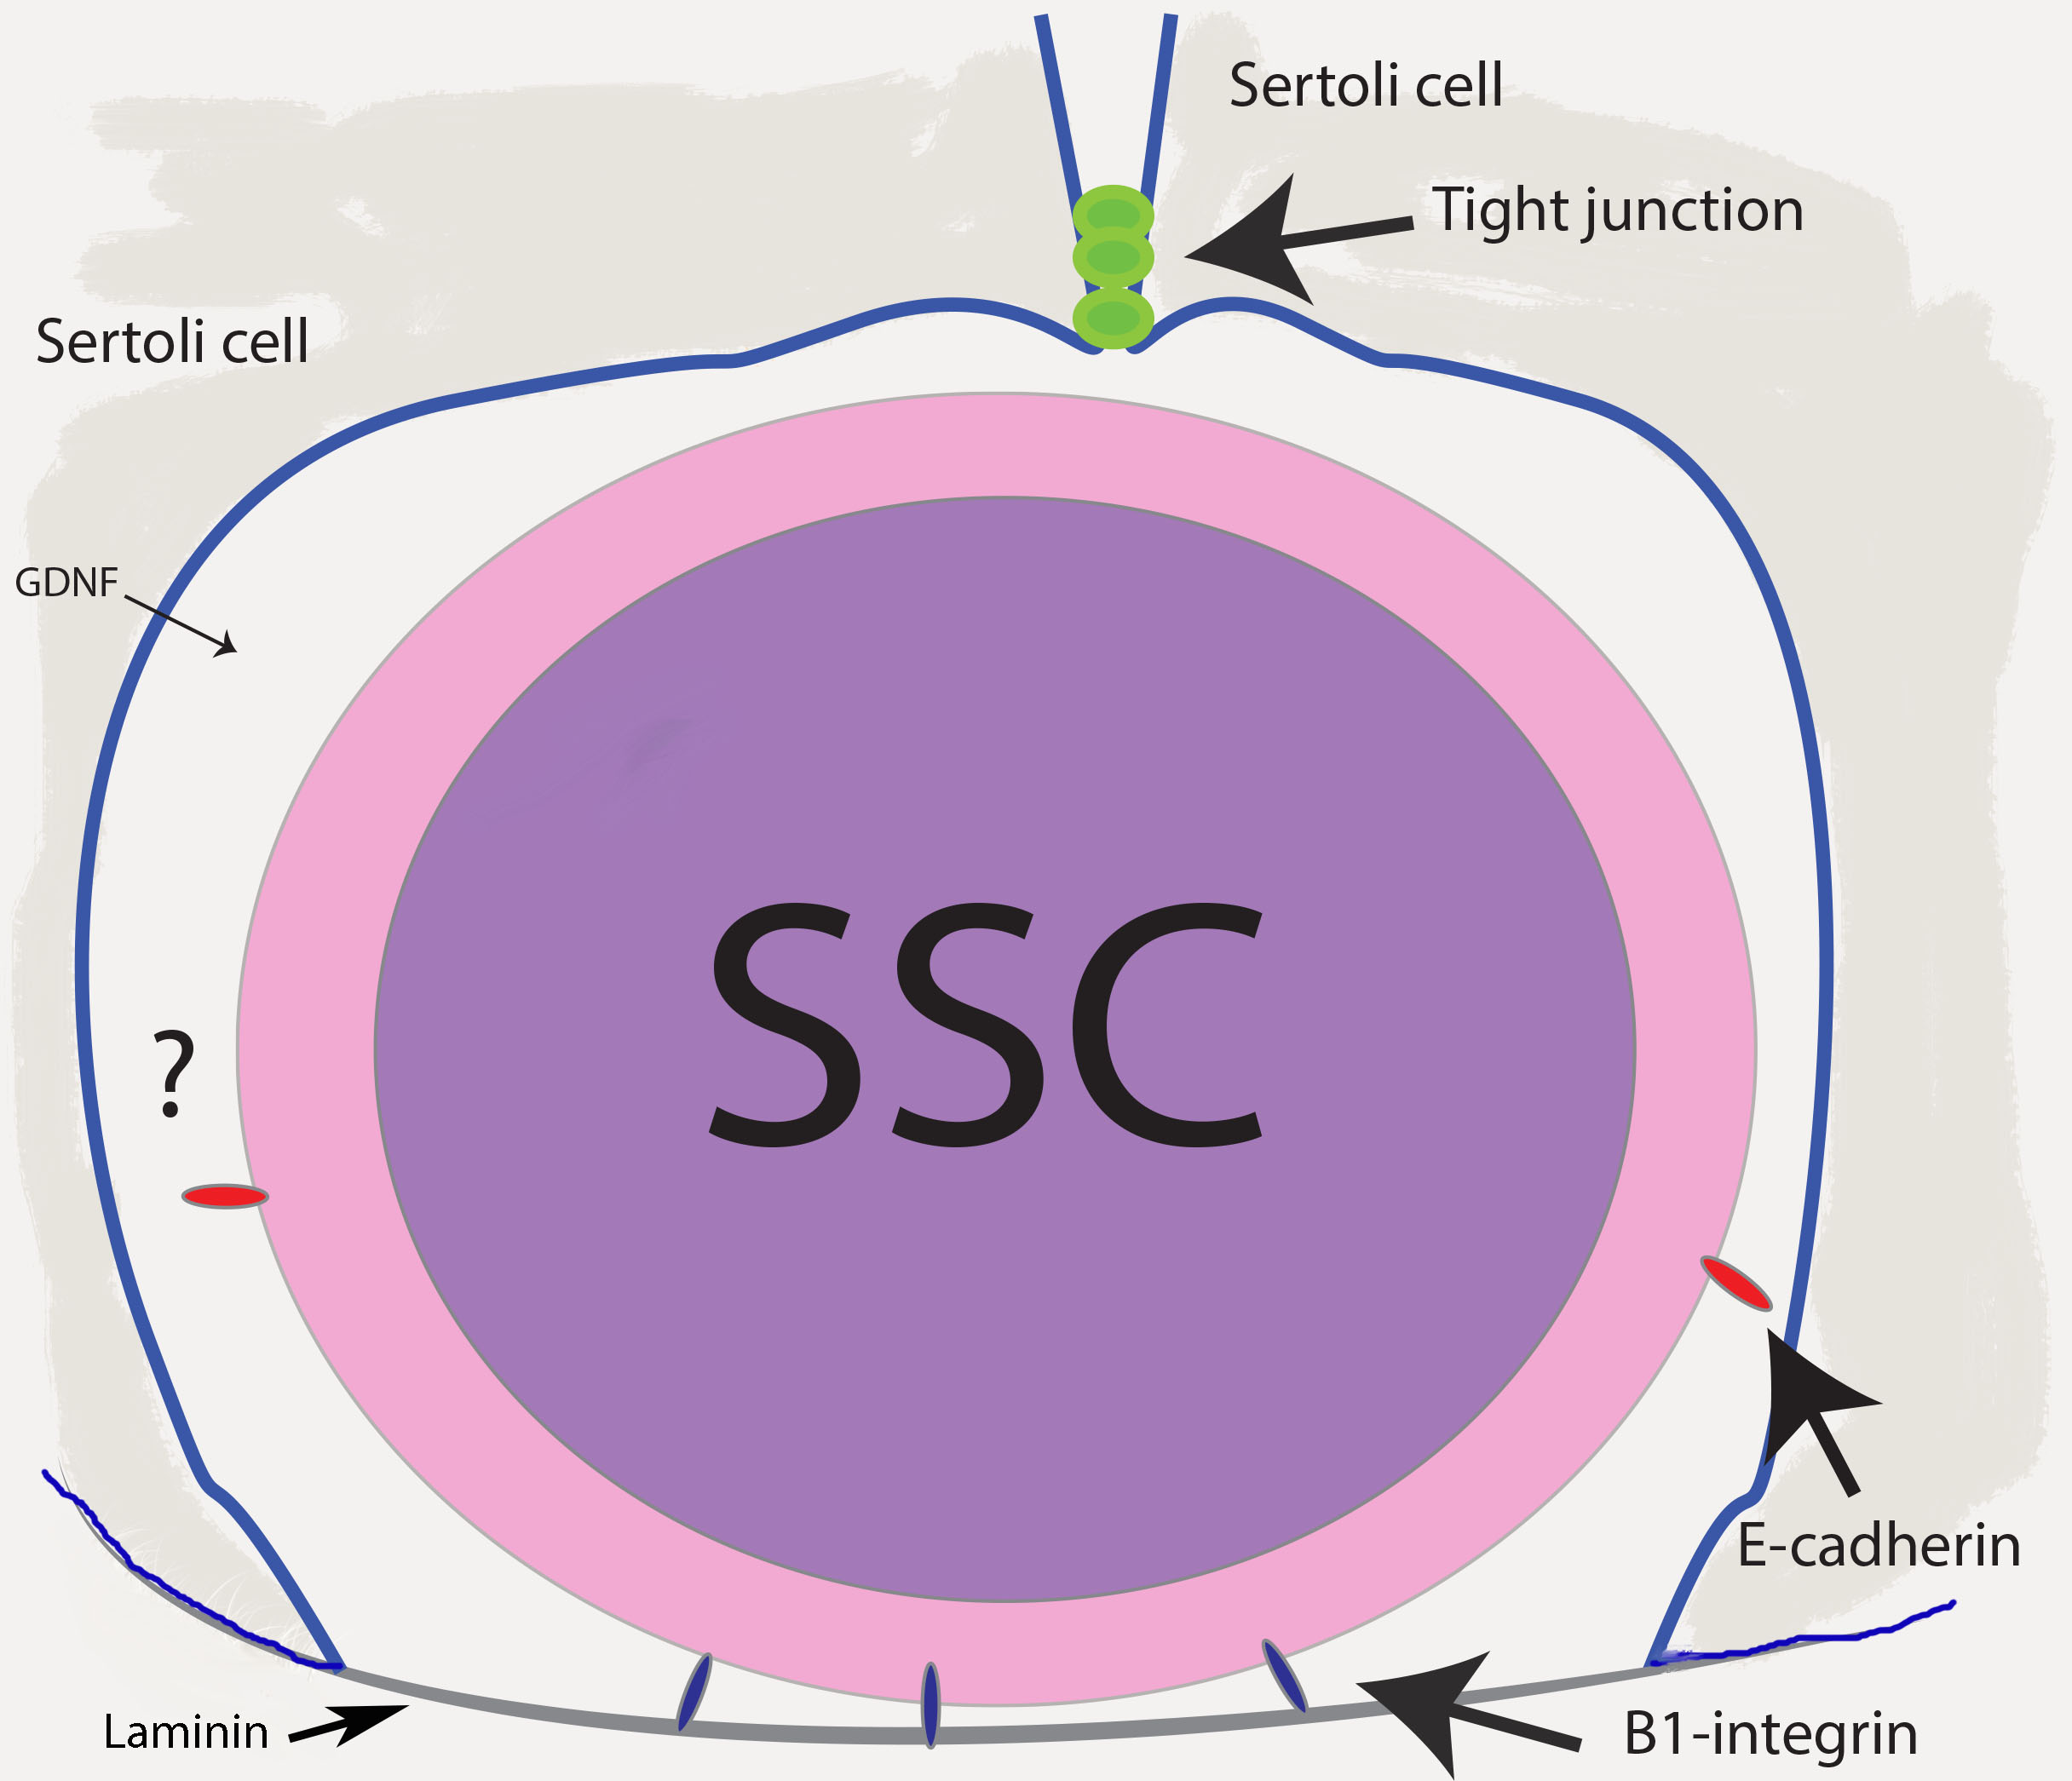 Spermatogonial stem cells (SSC) reside in a specialized environment (niche) within the seminiferous tubules.